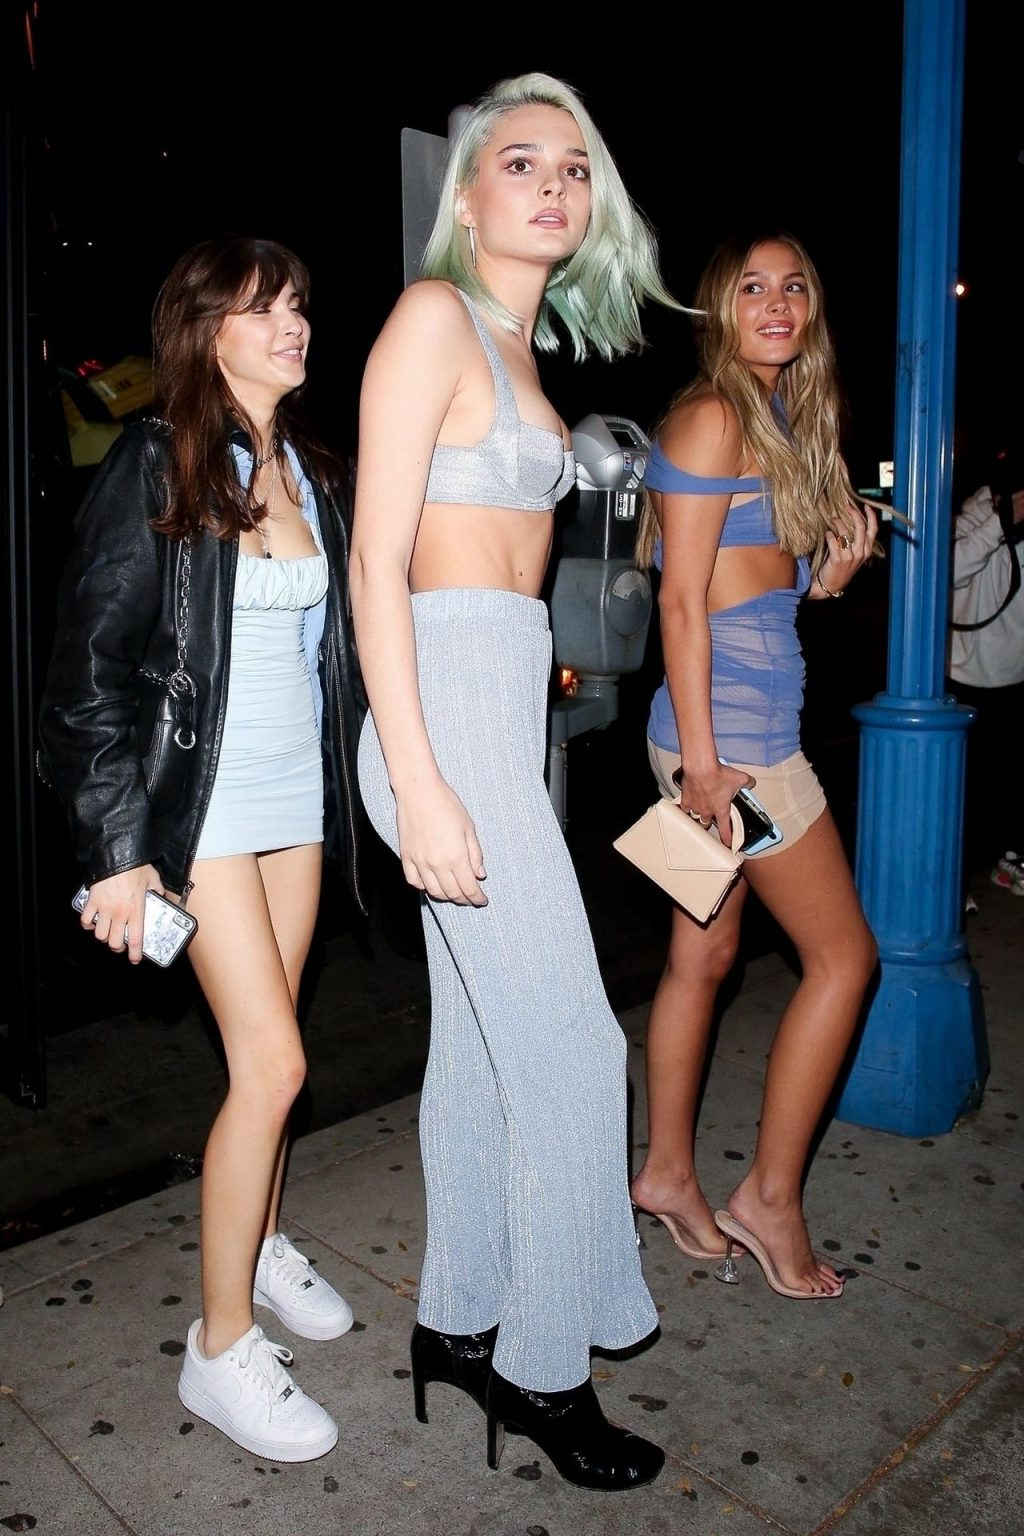 Charlotte Lawrence Arrives with Madison Beer and friends to Celebrate her Birthday in WeHo (26 Photos)